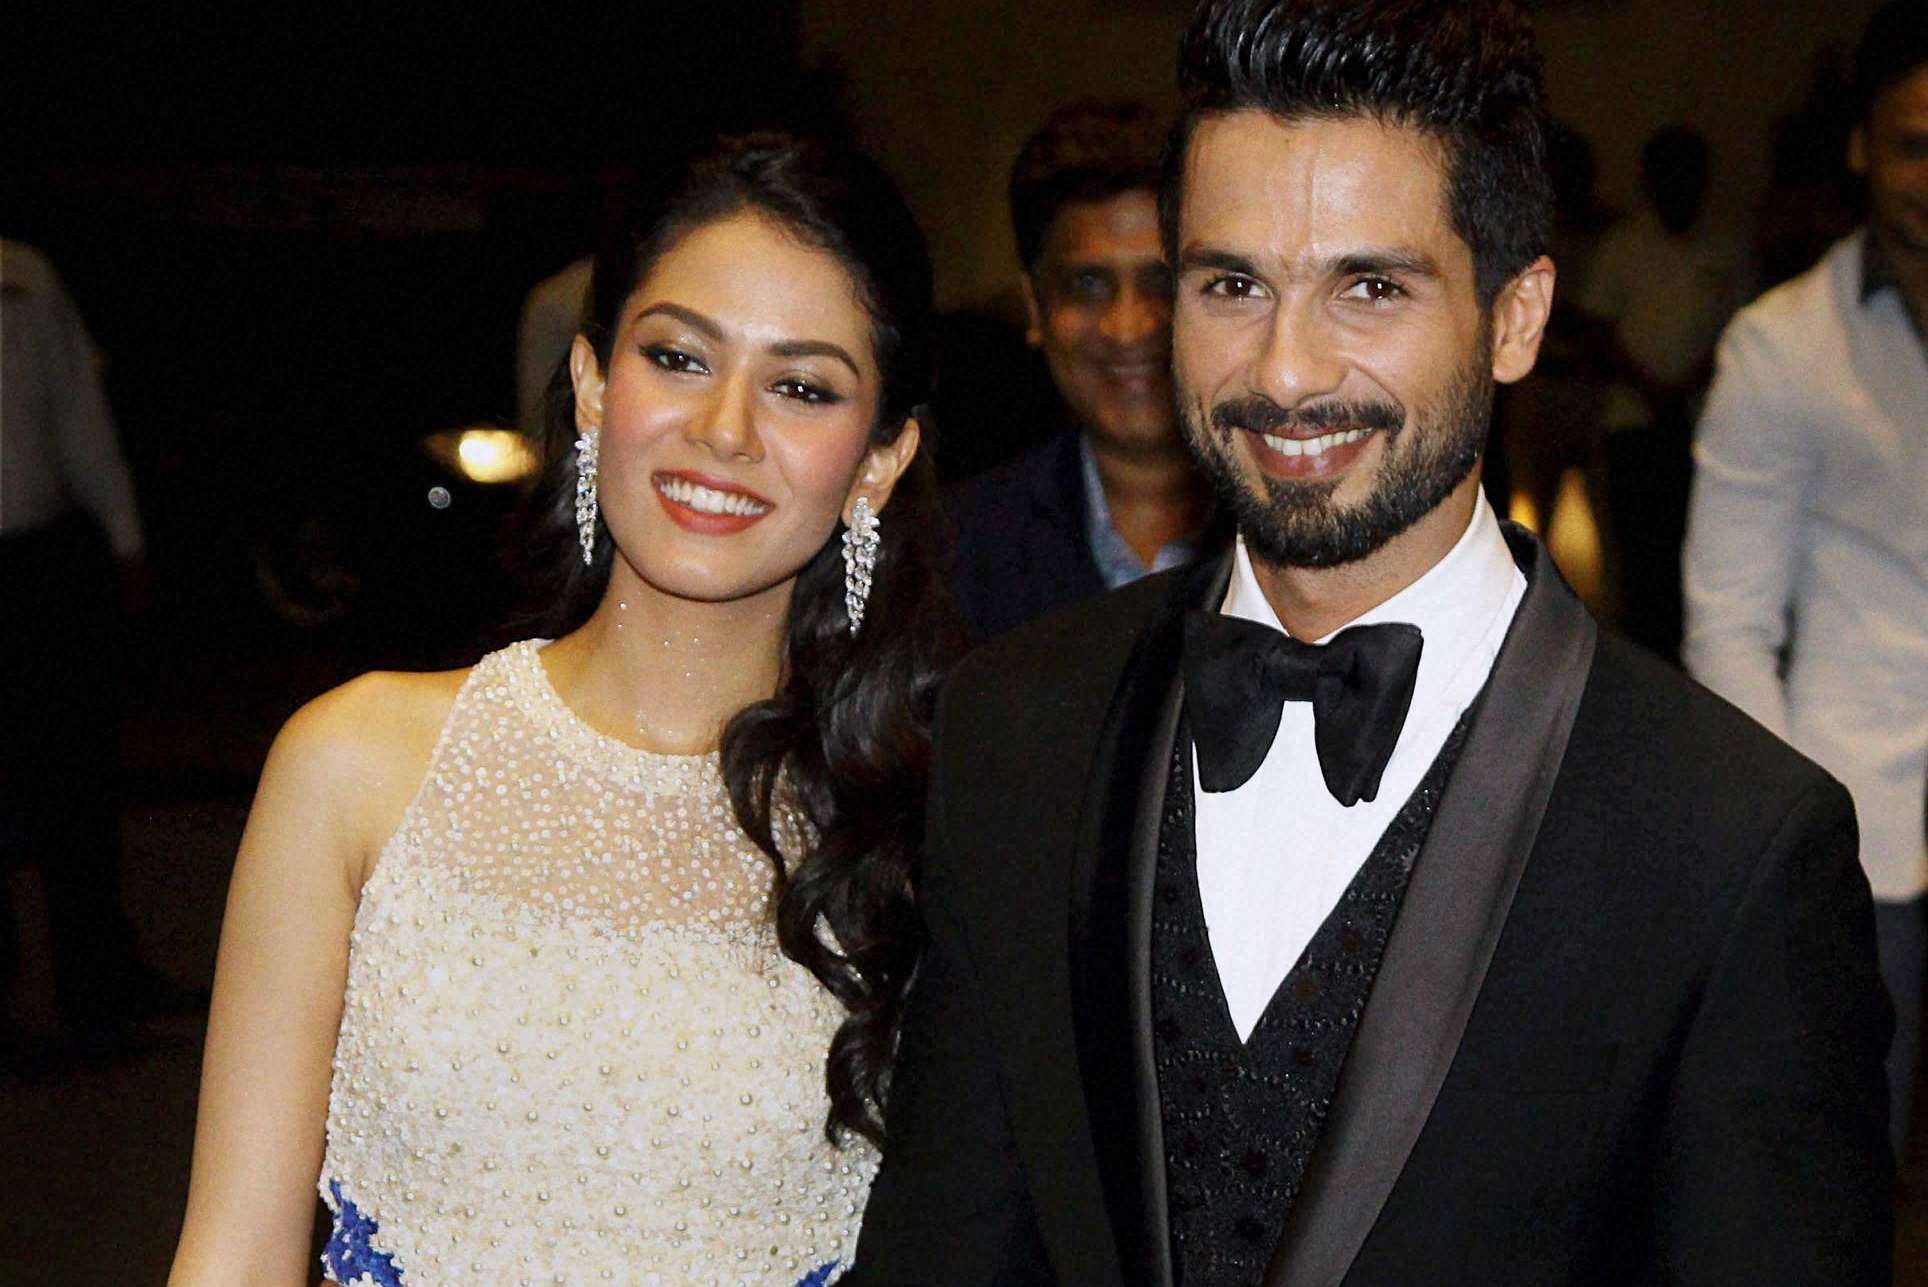 beautiful couple shahid kapoor with his wife mira rajput wallpapers for smart phone